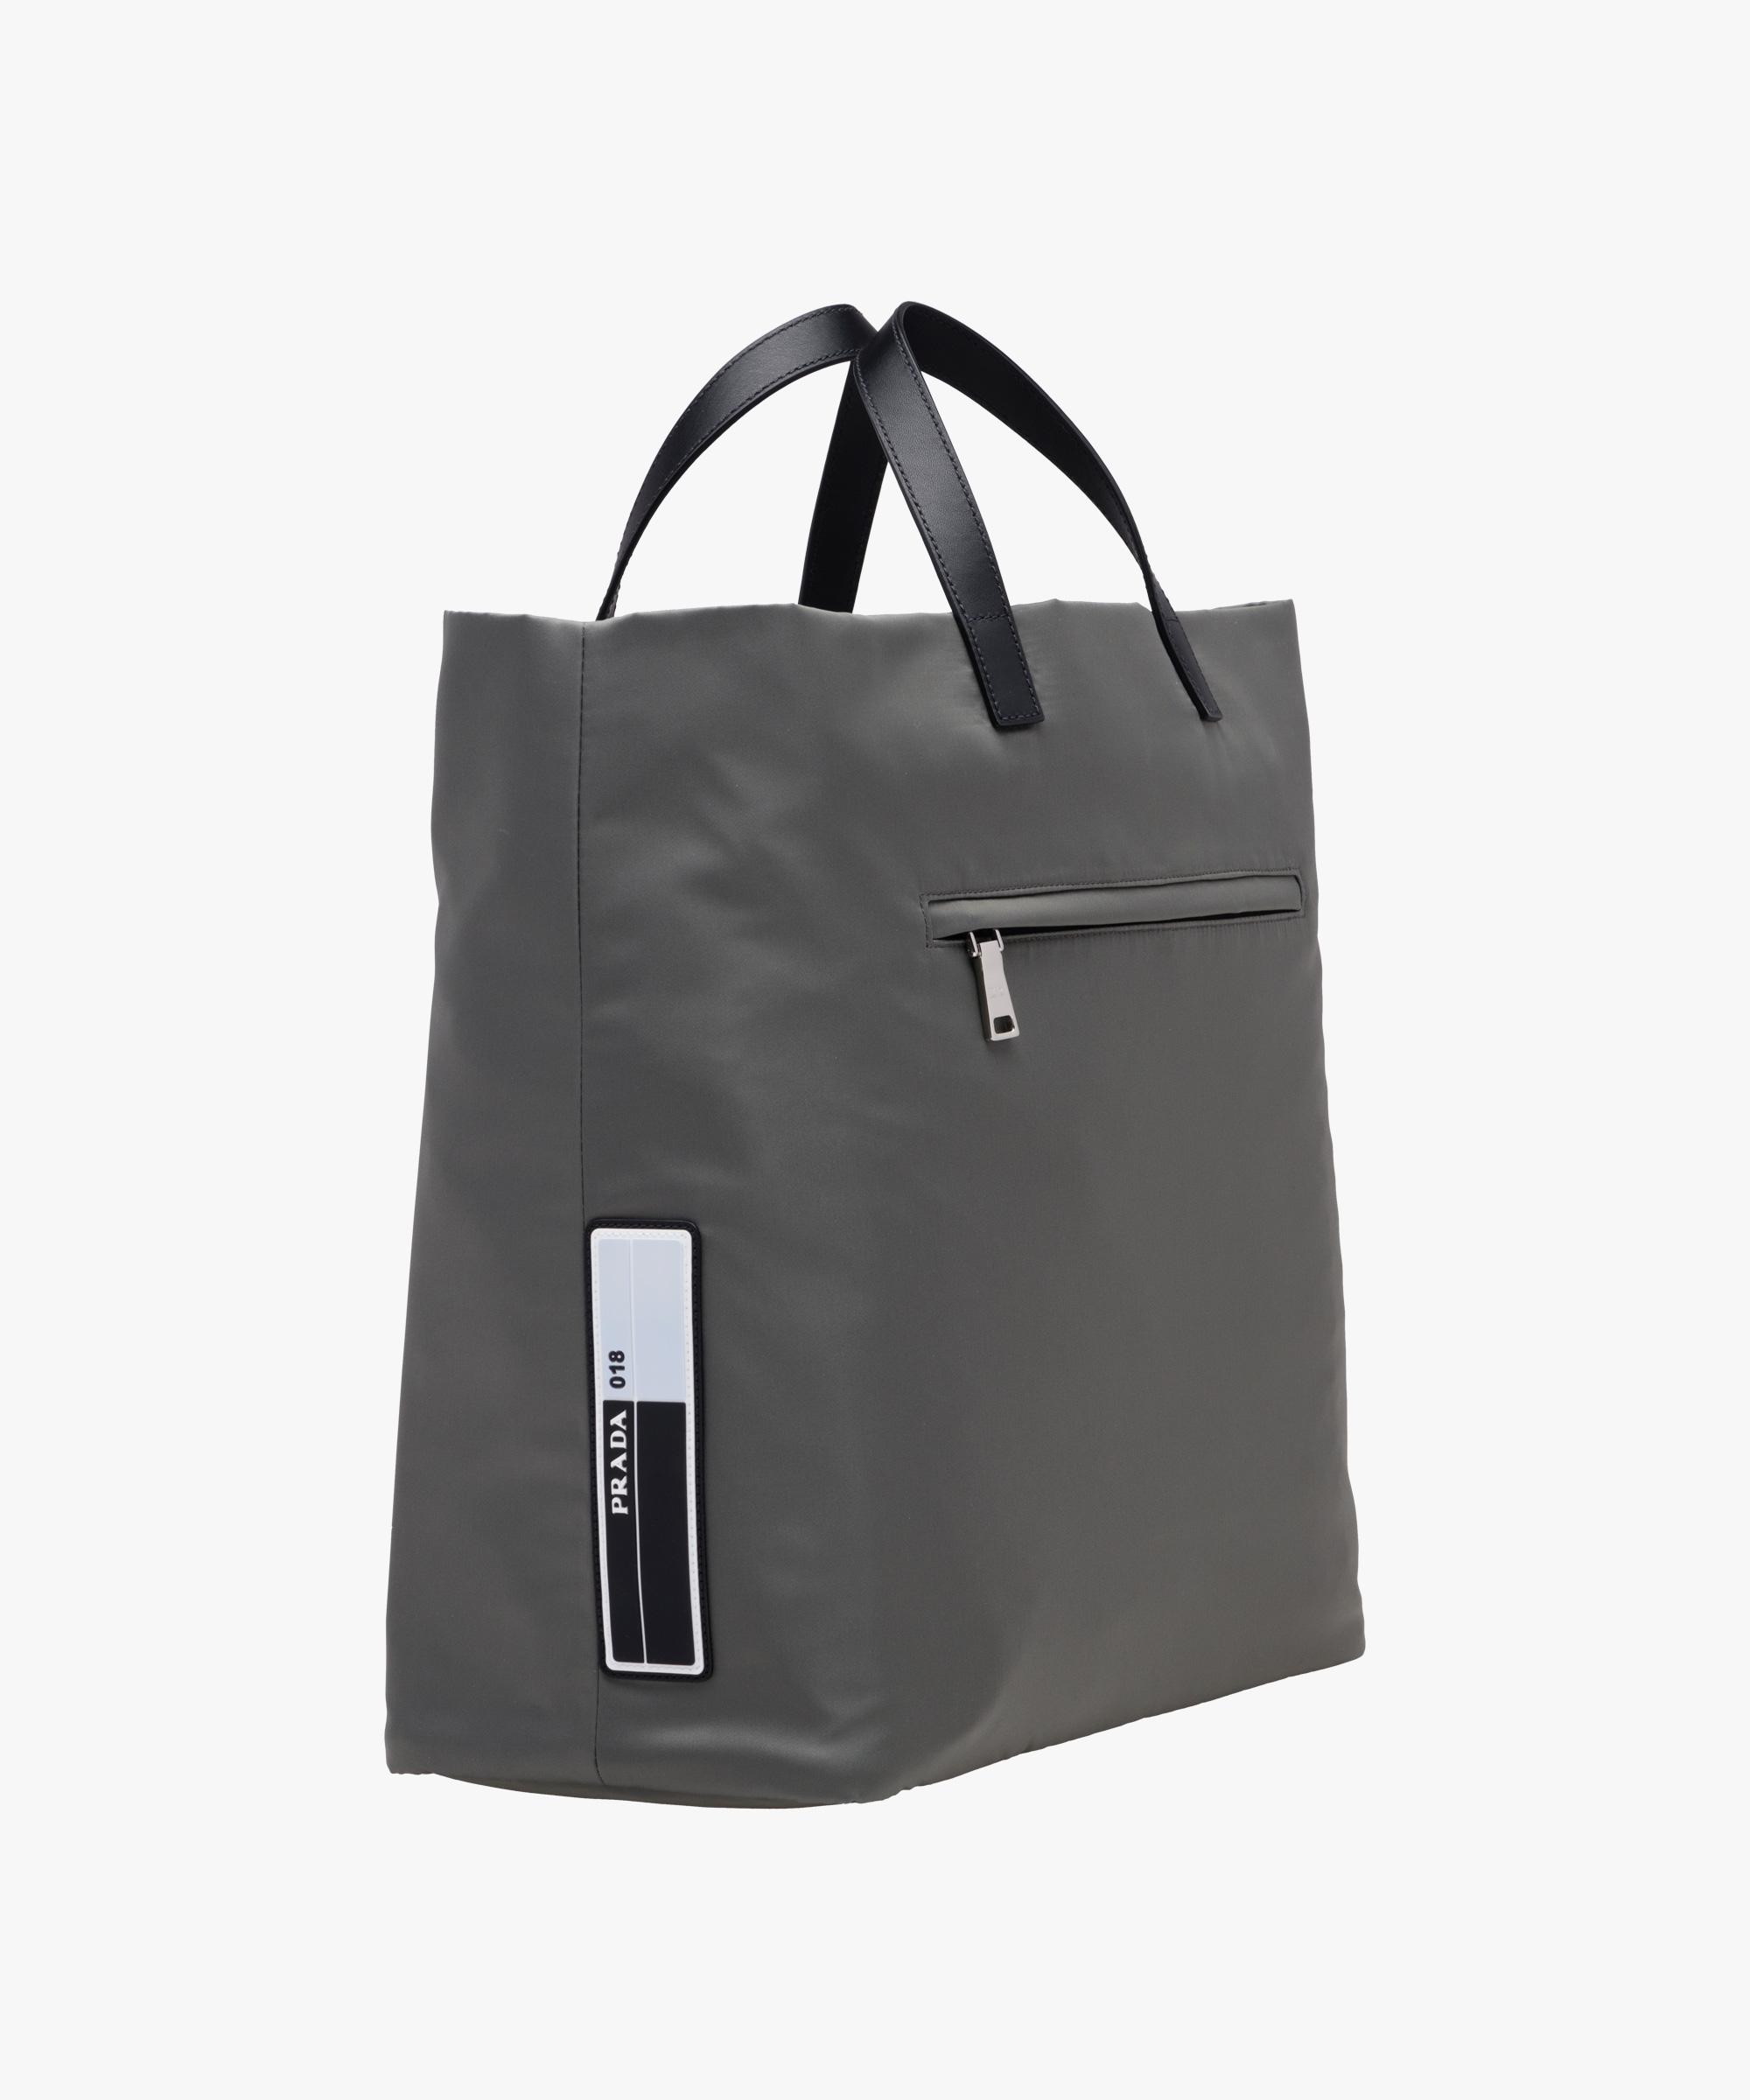 c8d62b7c17ca ... clearance lyst prada technical fabric tote in gray for men 331c7 602f5